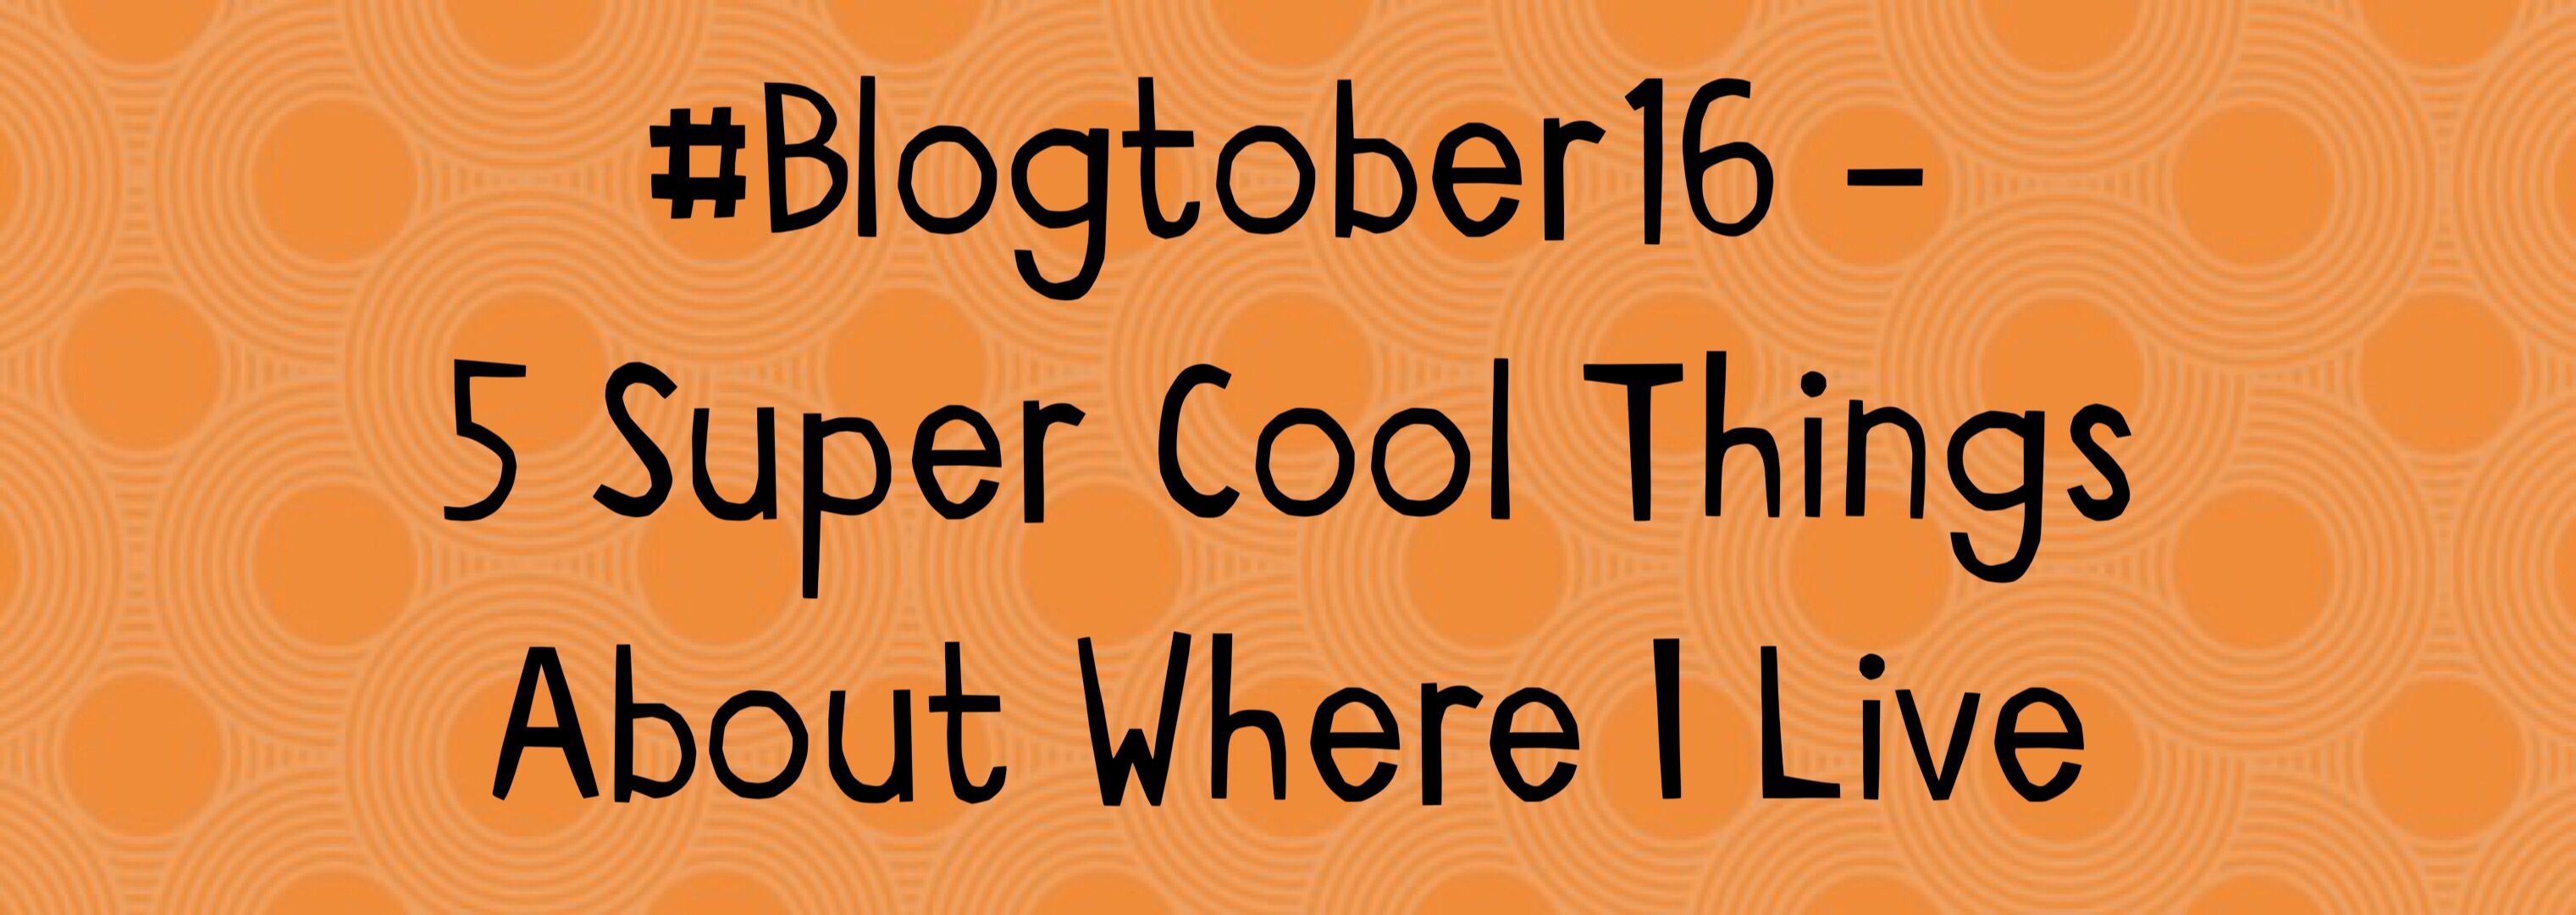 5 Super Cool Things About Where I Live – #Blogtober16 Day 20